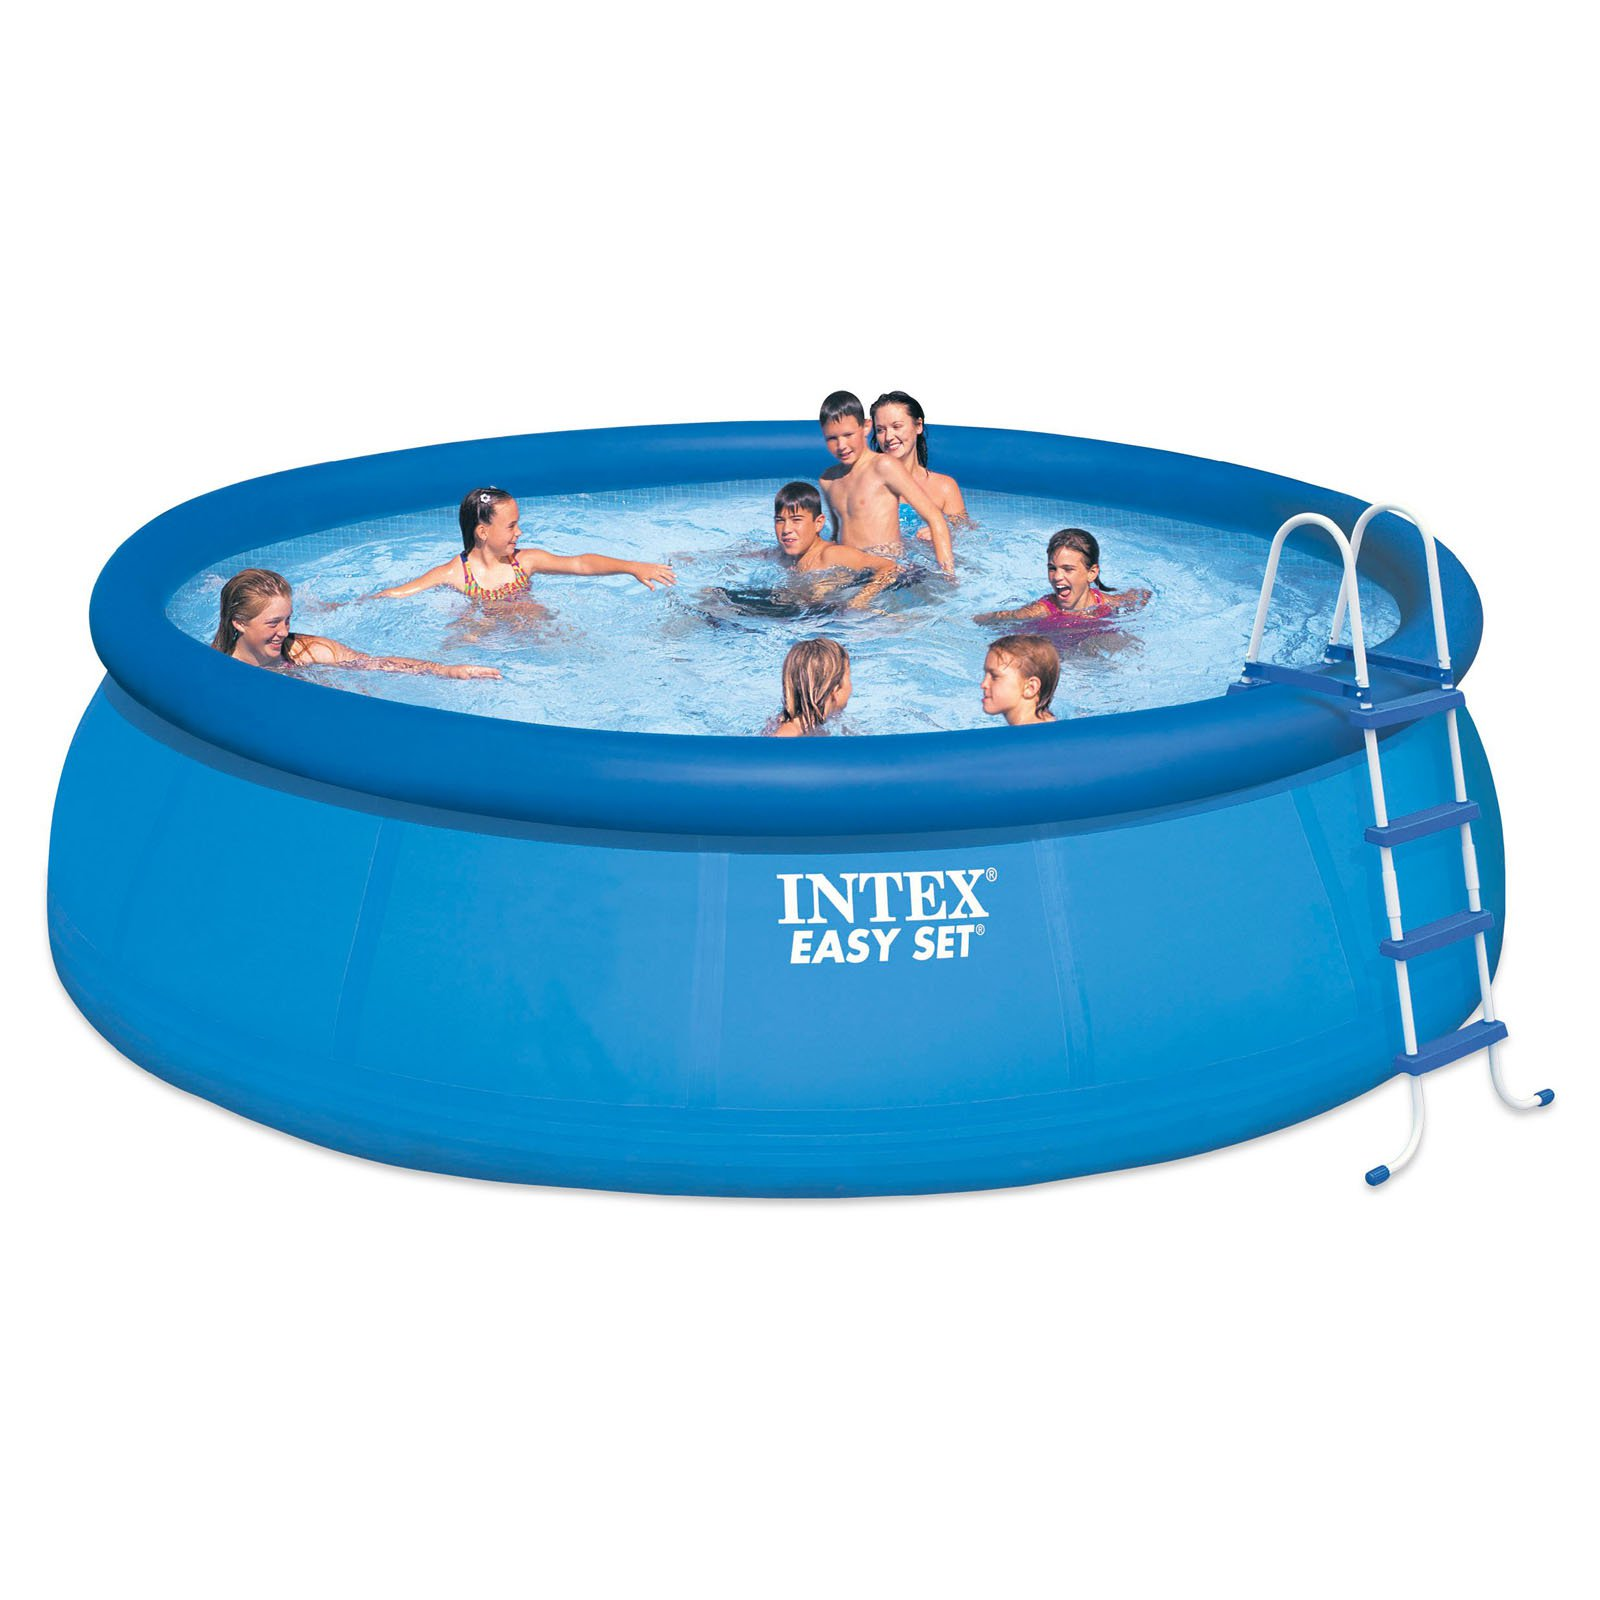 Intex 15 ft. x 48 in. Easy Set Swimming Pool with 1,000 GPH Filter Pump by Intex